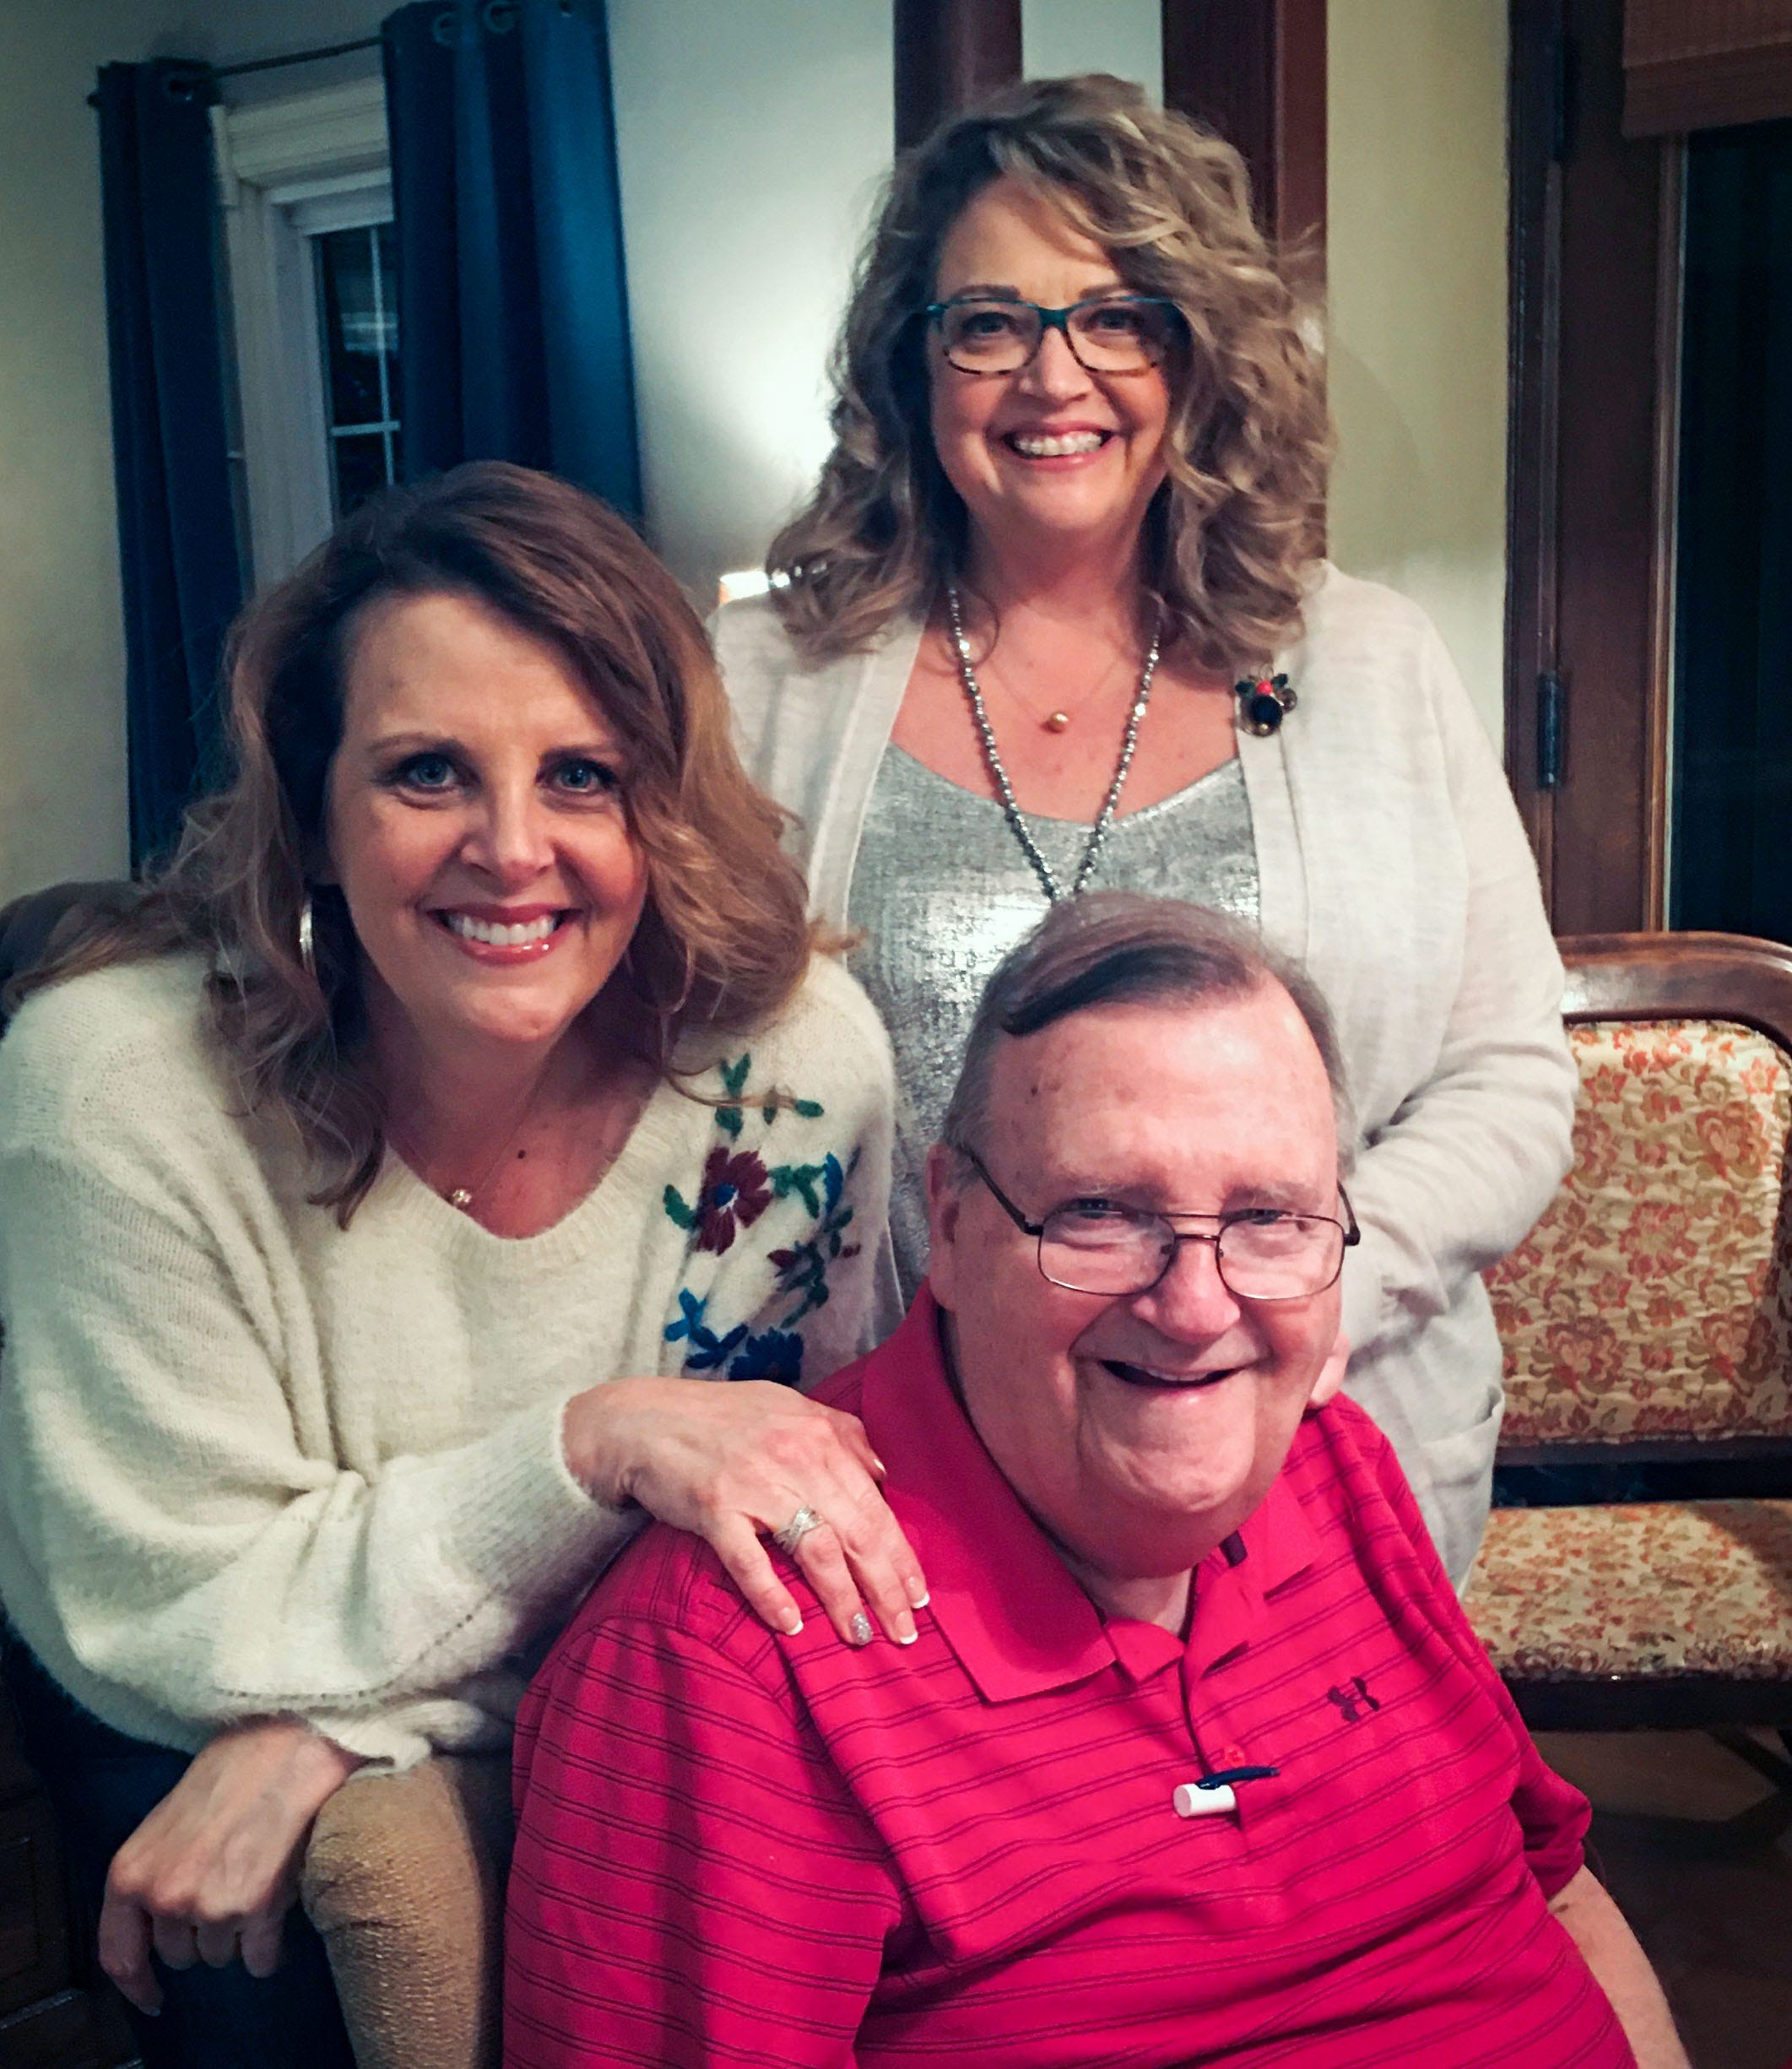 A family photo of Lou Luiken with his daughters, Jennifer Luiken and Suzanne Winkelpleck, taken on Christmas Eve 2019.